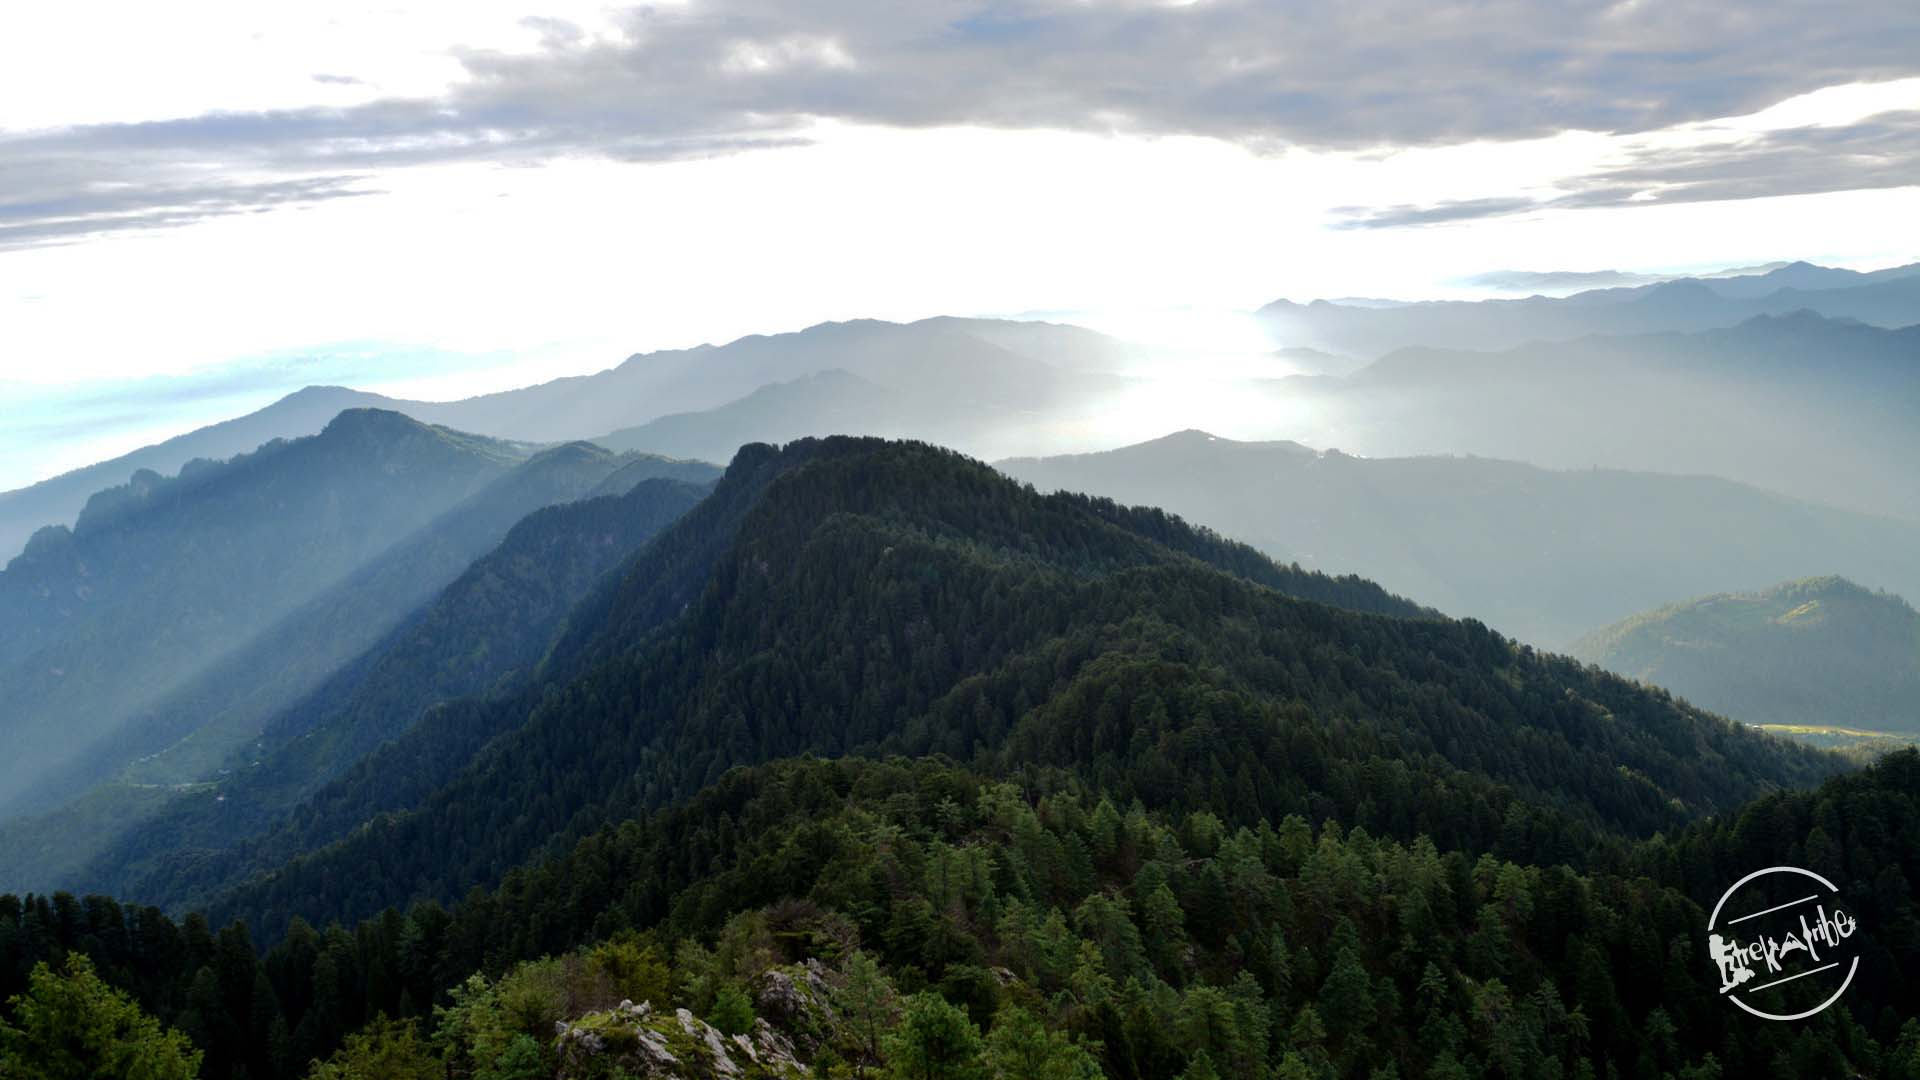 View of dense deodar forest from Shali tibba